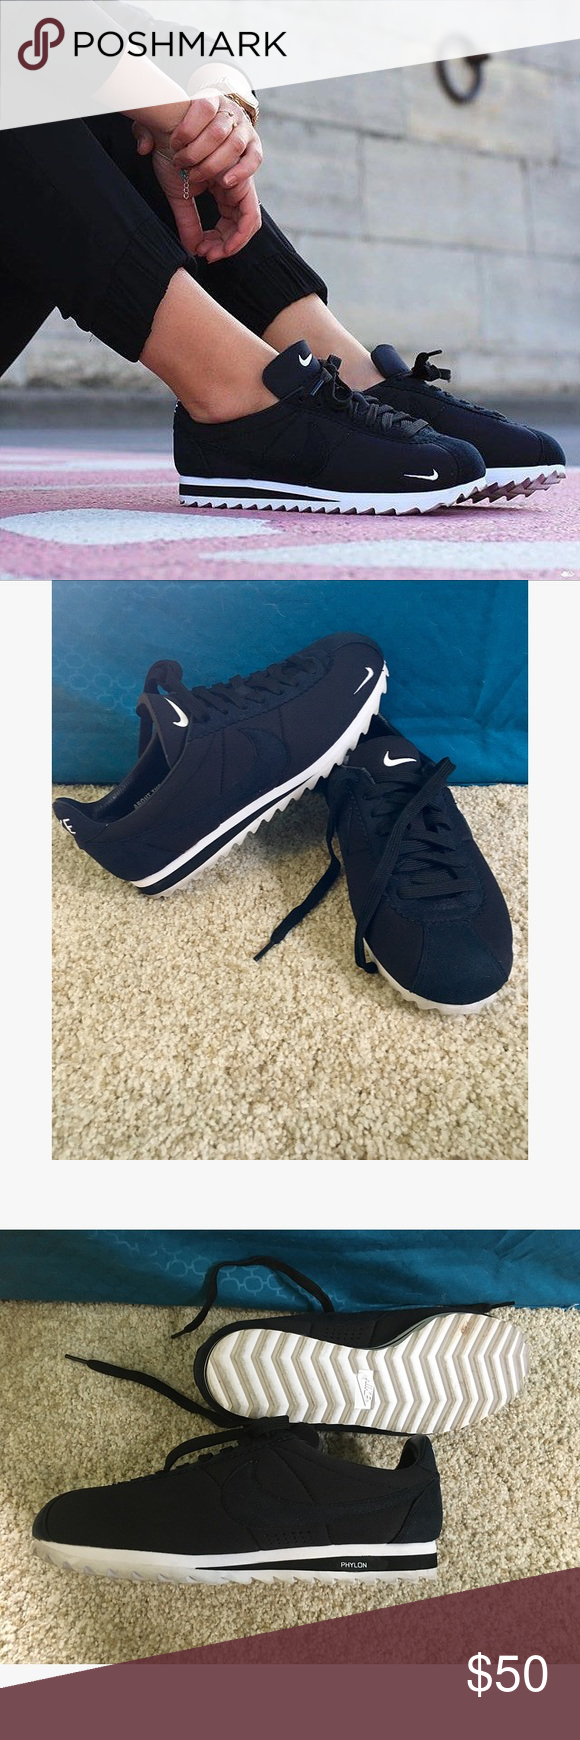 the latest f1faa 2a908 Black Nike phylon Cortez Size 7 in men s . 8.5 in women s. In excellent  conditions literally only wore them one time . Super comfortable   light  weight.